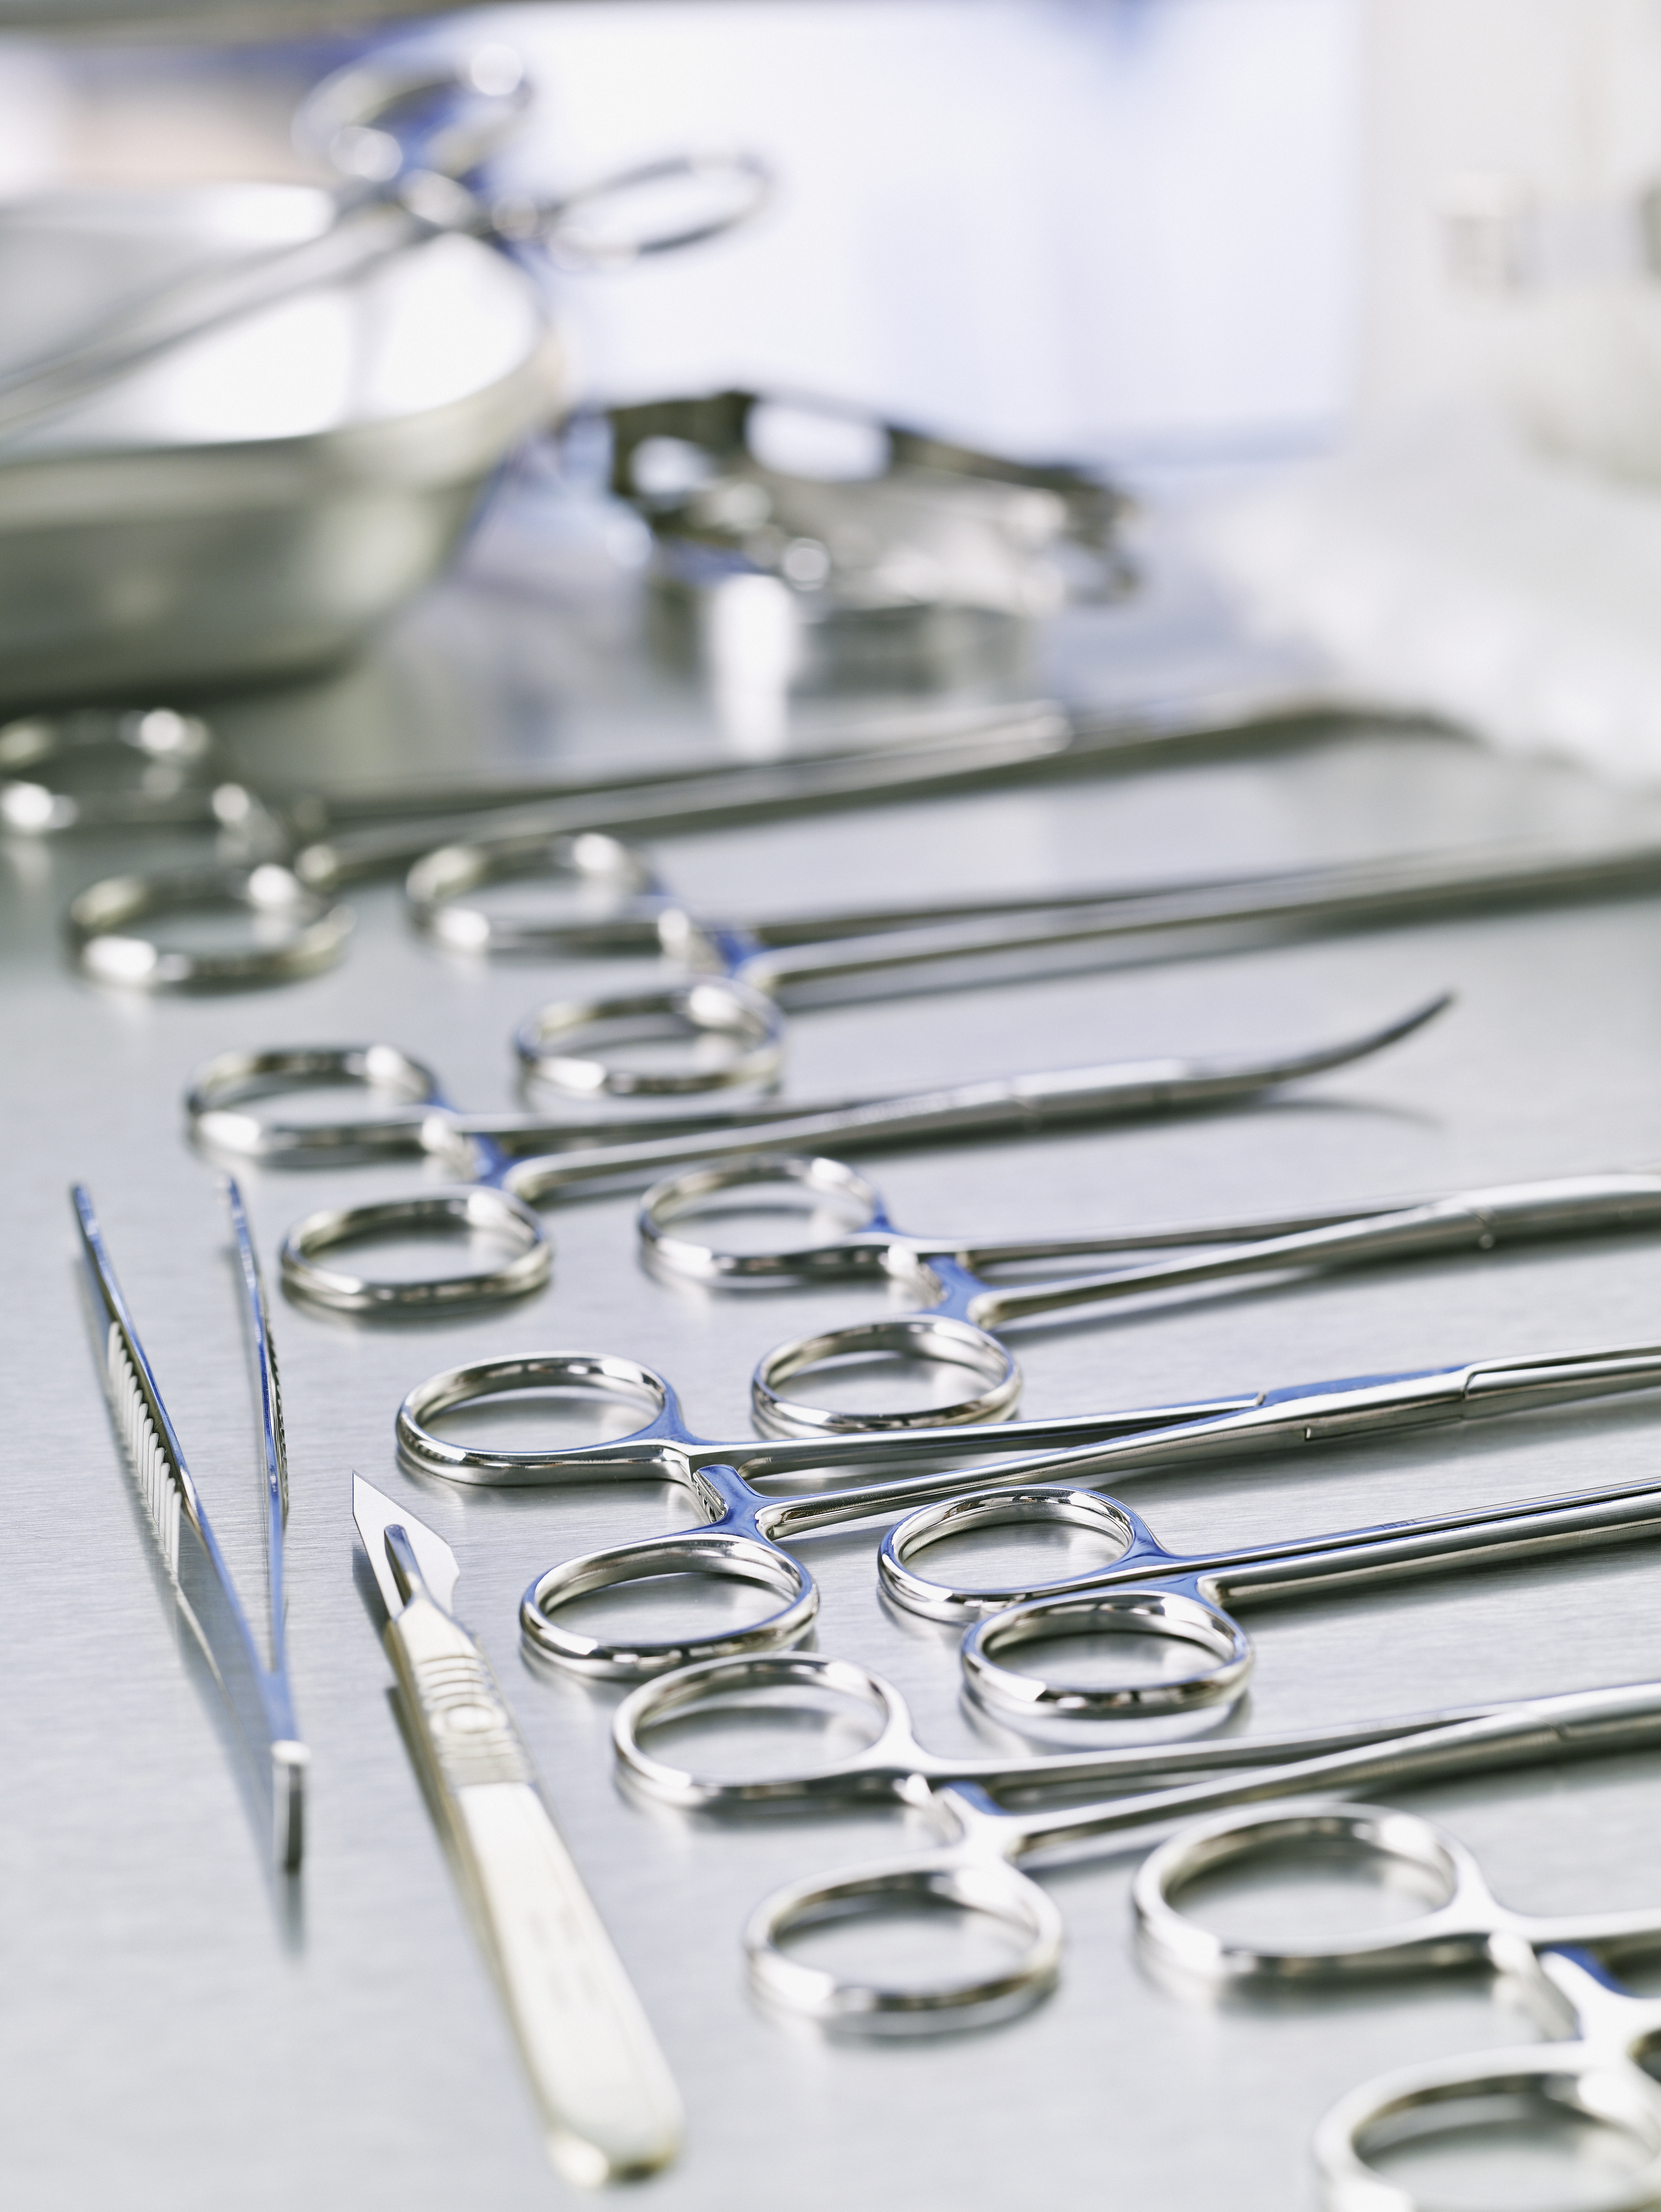 Medical scissors and scalpel on surgical table.